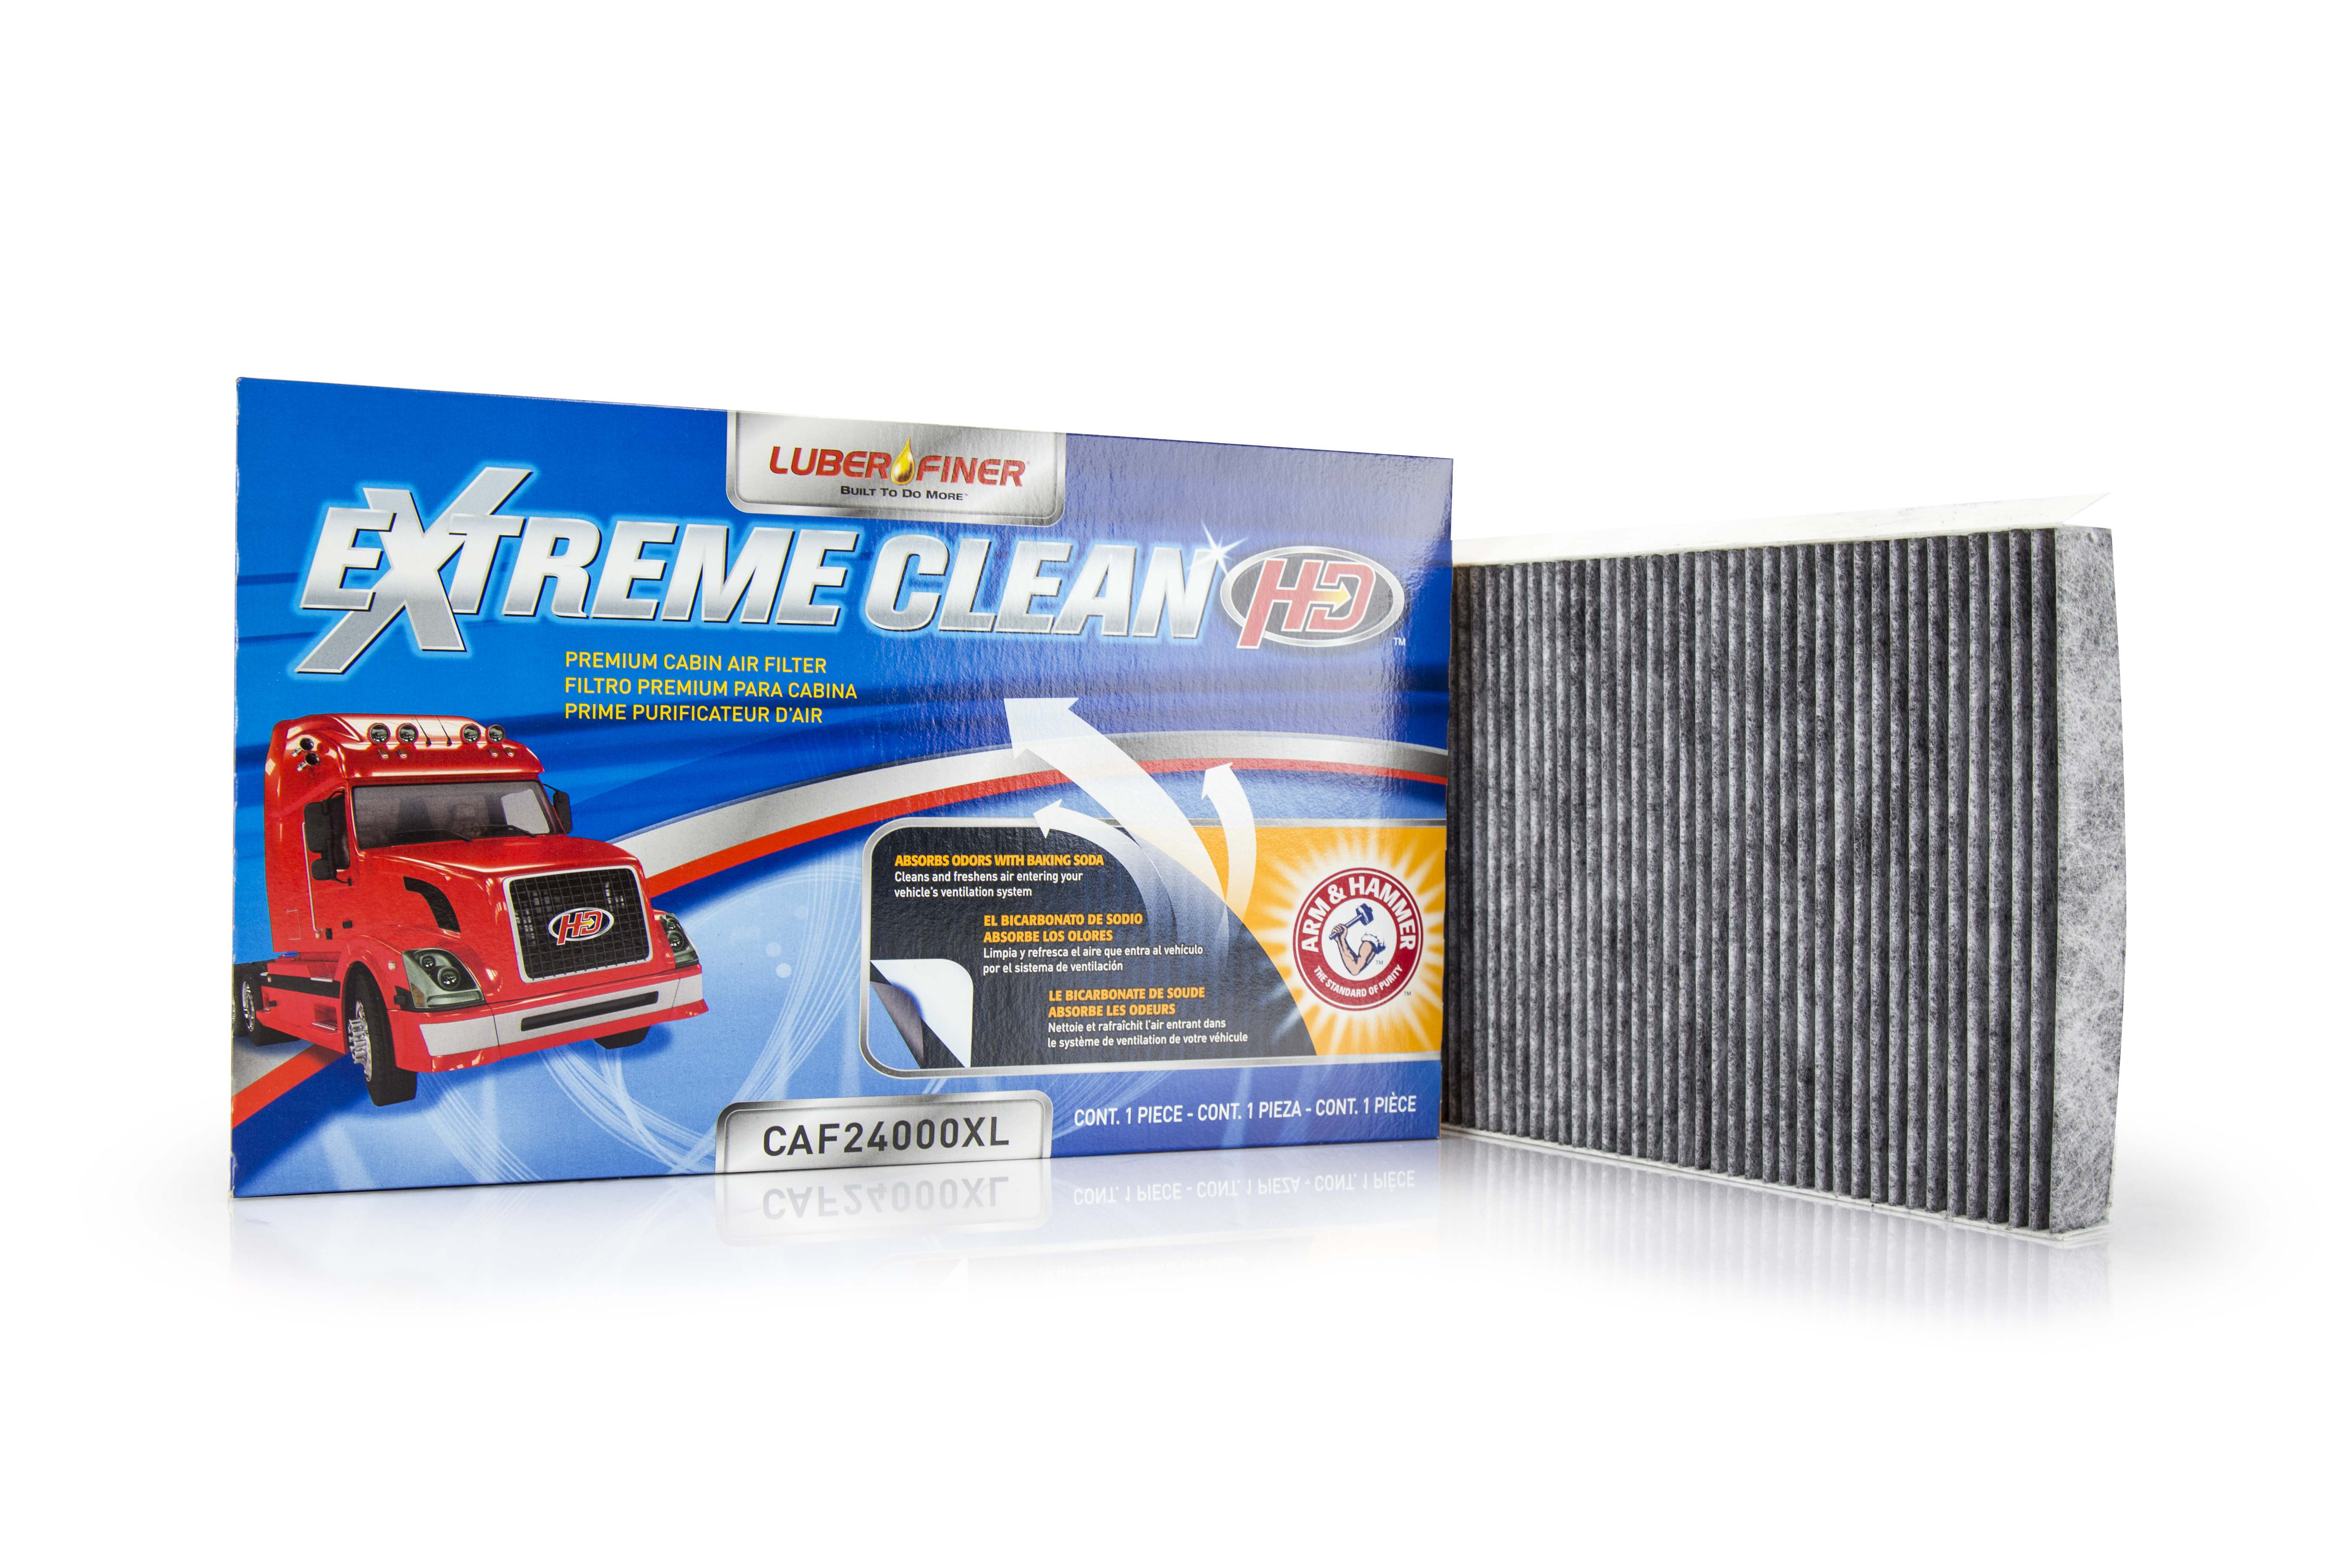 Luber-finer Extreme Clean HD Premium Cabin Air Filter